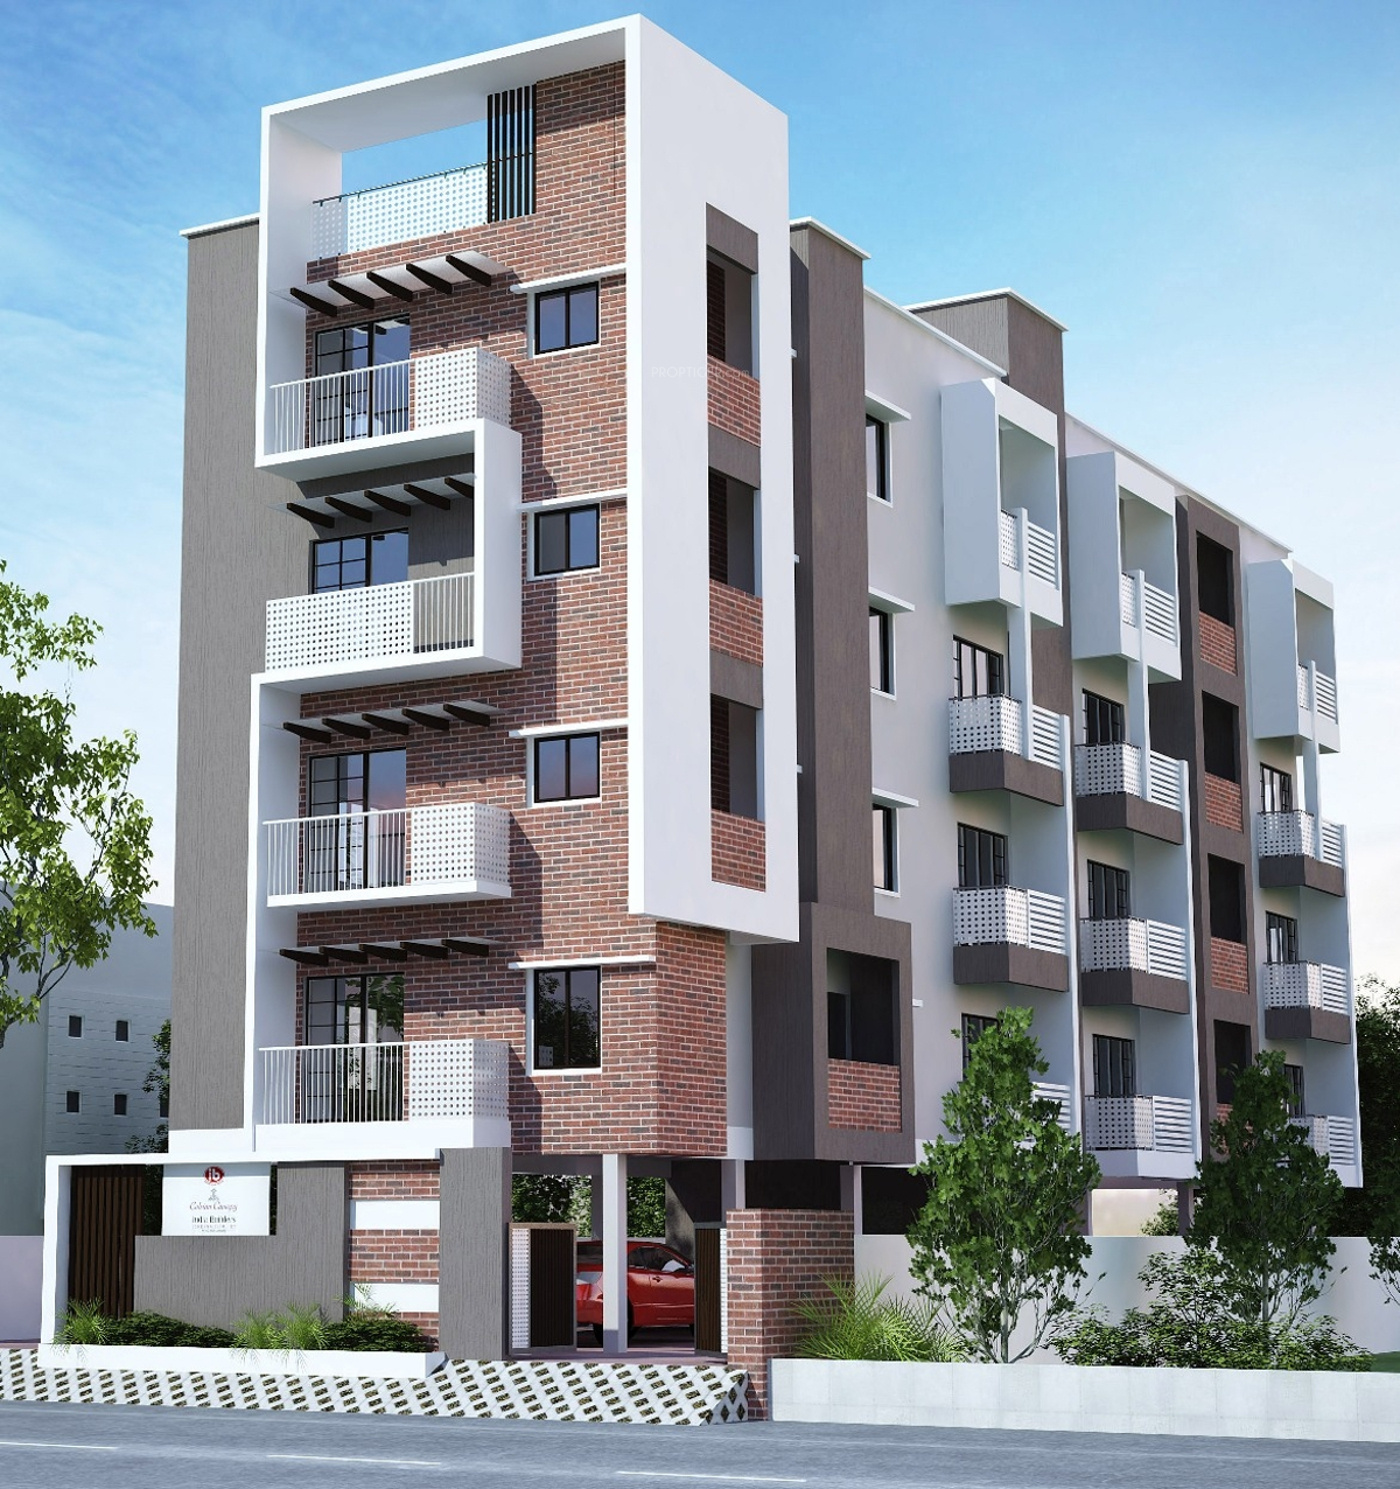 2 Or 3 Bhk Flat Interior Designing Cost In Kolkata: 1370 Sq Ft 3 BHK 3T Apartment For Sale In India Builders